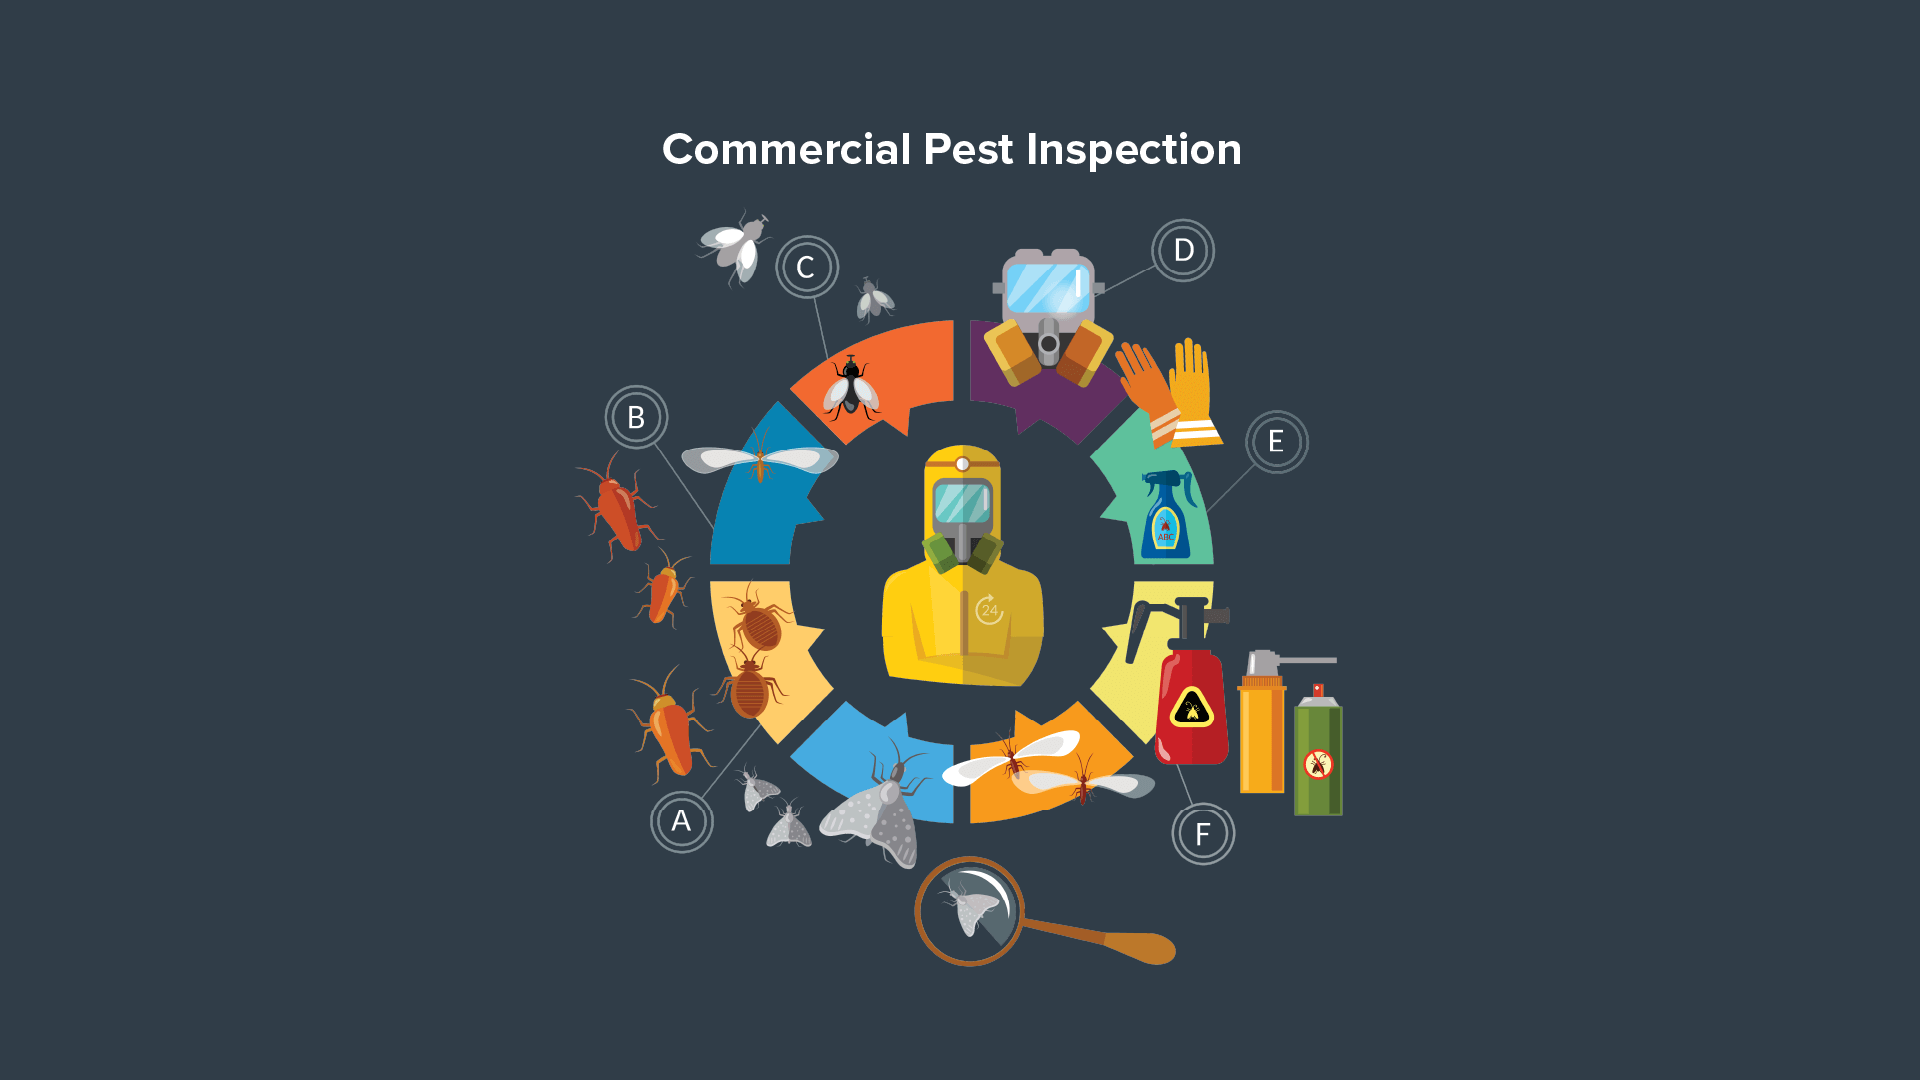 FREE Commercial Pest Inspection Checklist